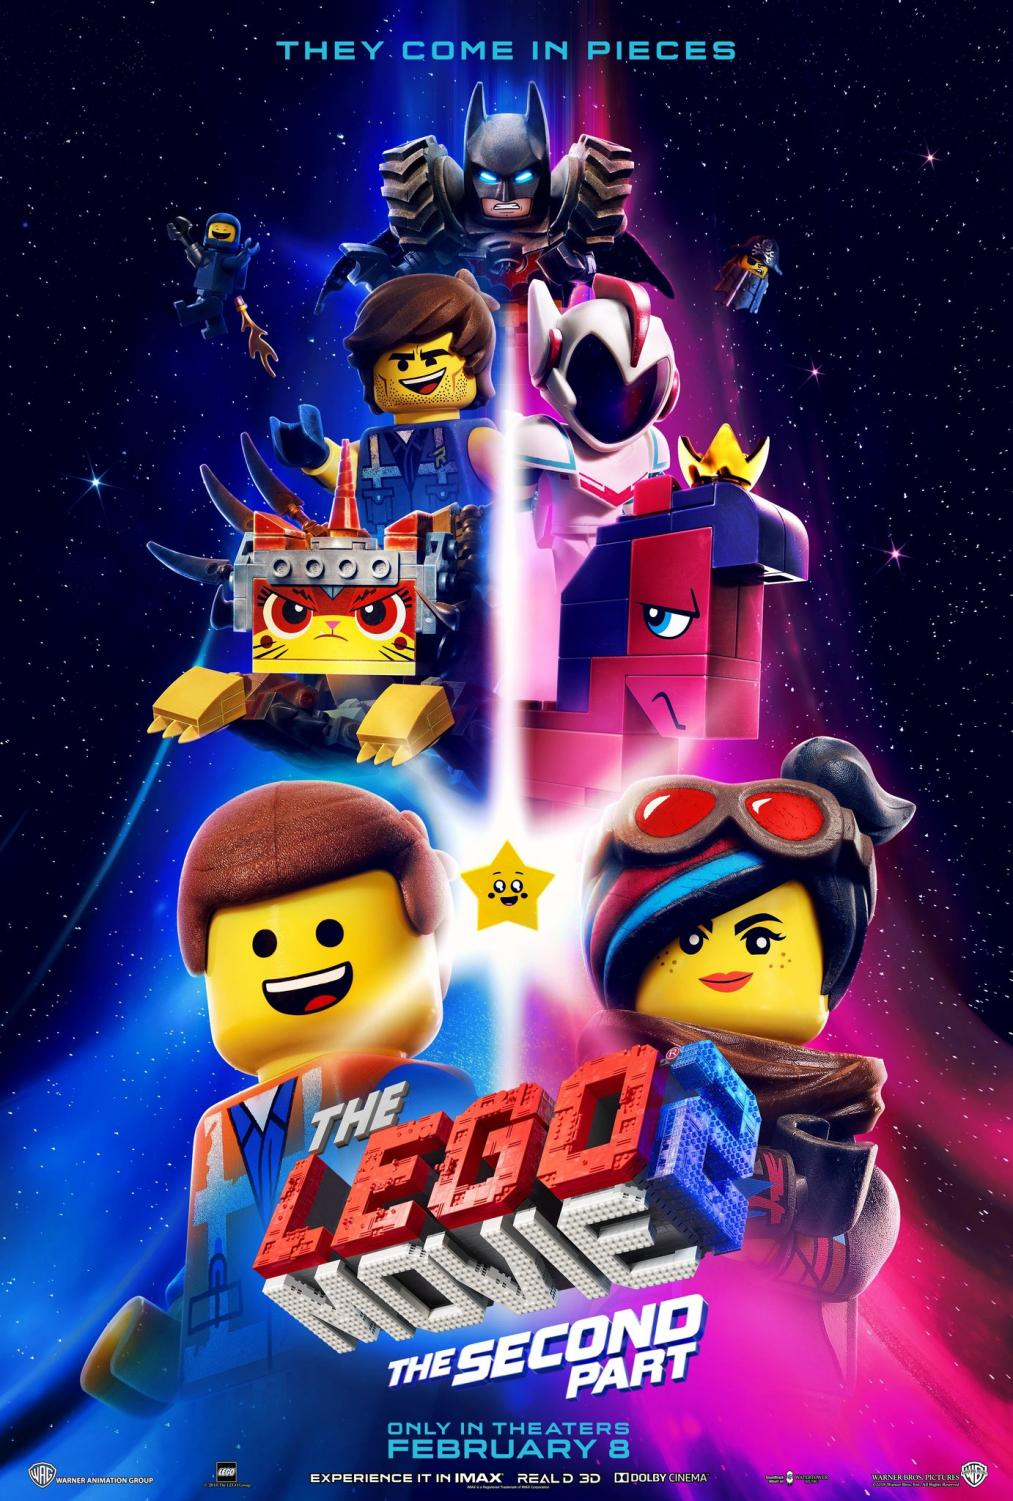 The 2nd Lego Movie assembled in theaters February 8th to overall praise. Image credited to imbd.com and Warner Bros.